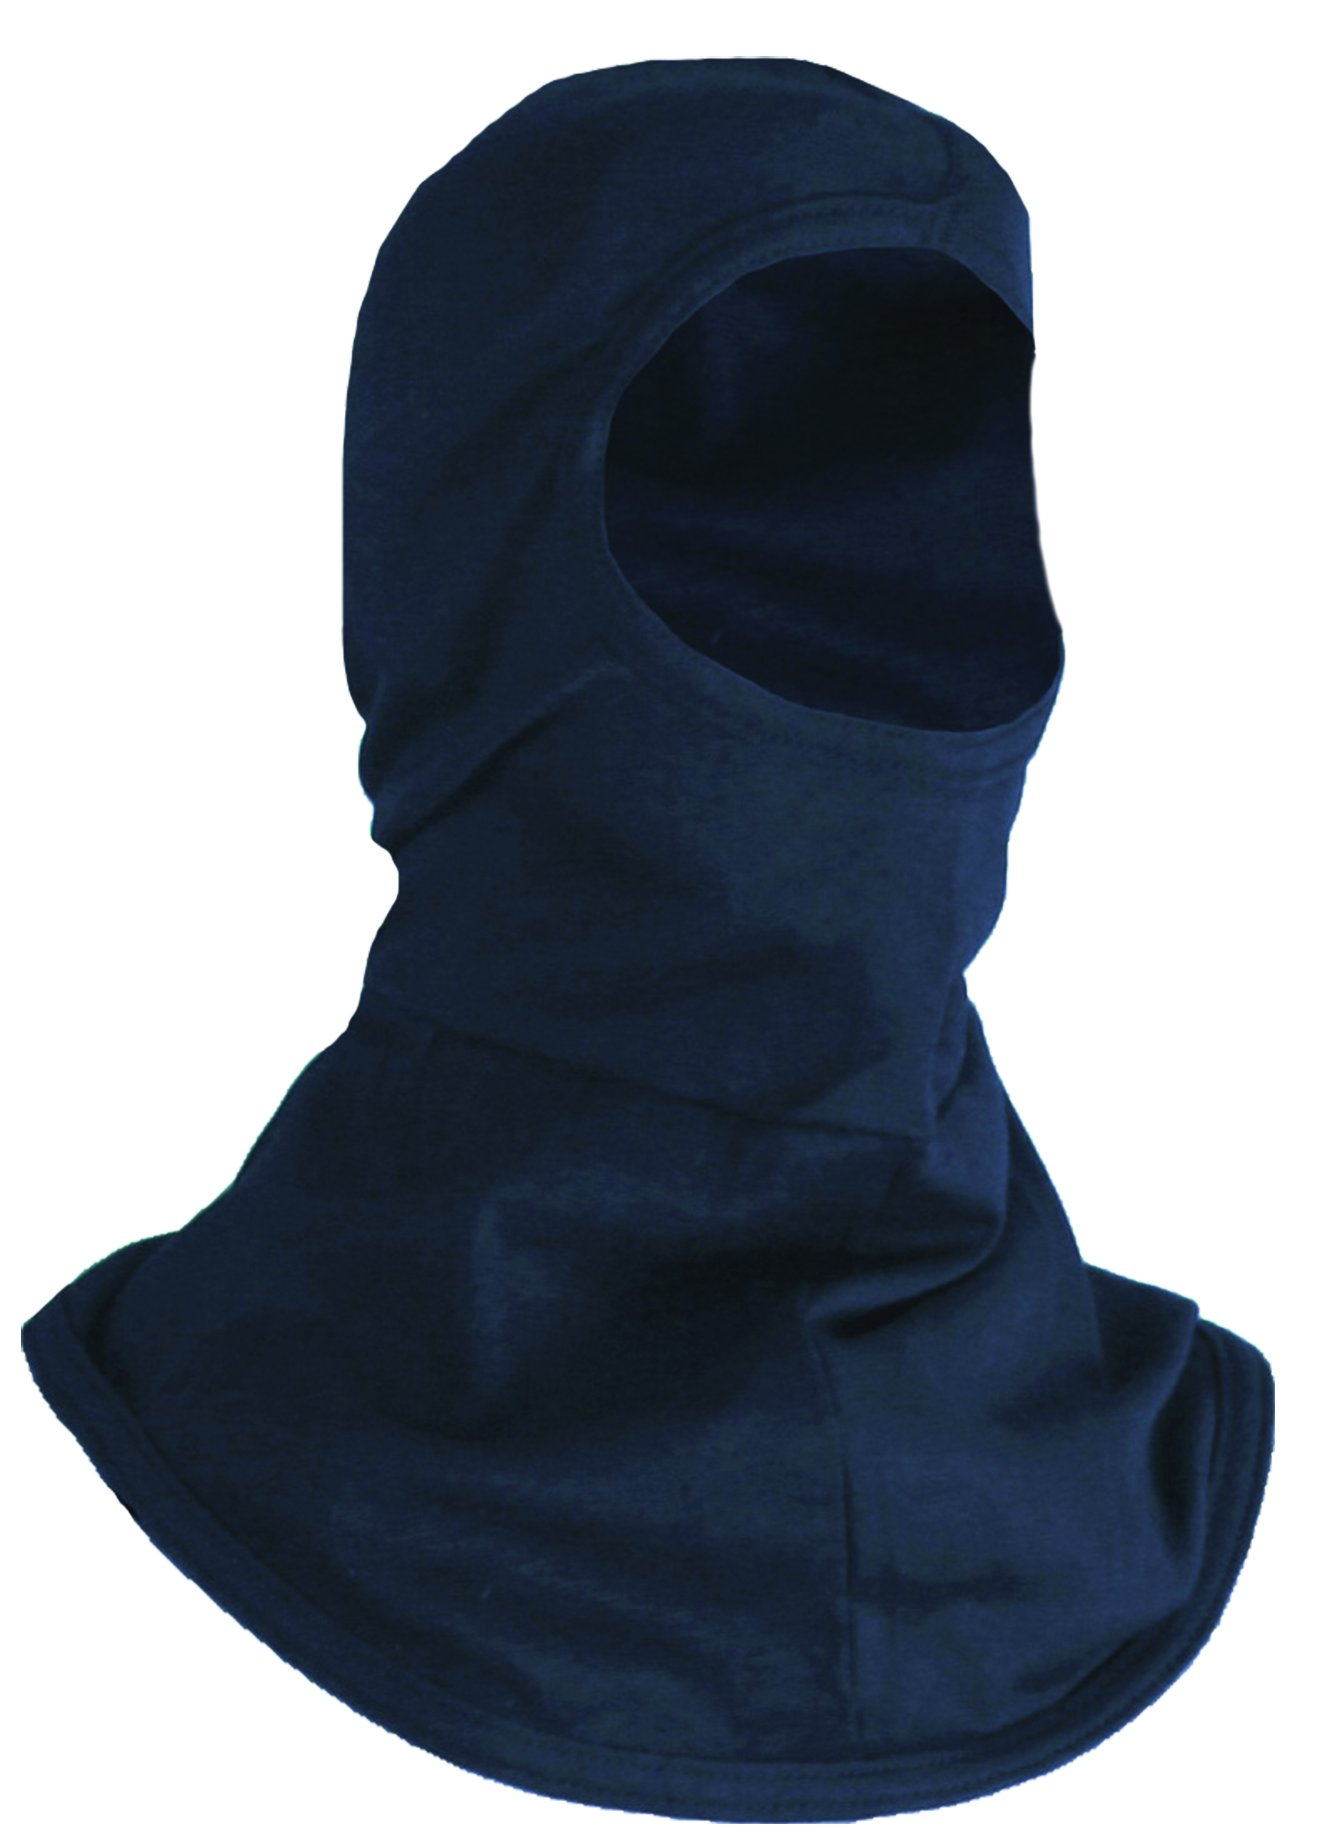 National Safety Apparel Flame Resistant (FR) UltraSoft Knit Hood, 12 Calorie Arc Rated (H11RY)